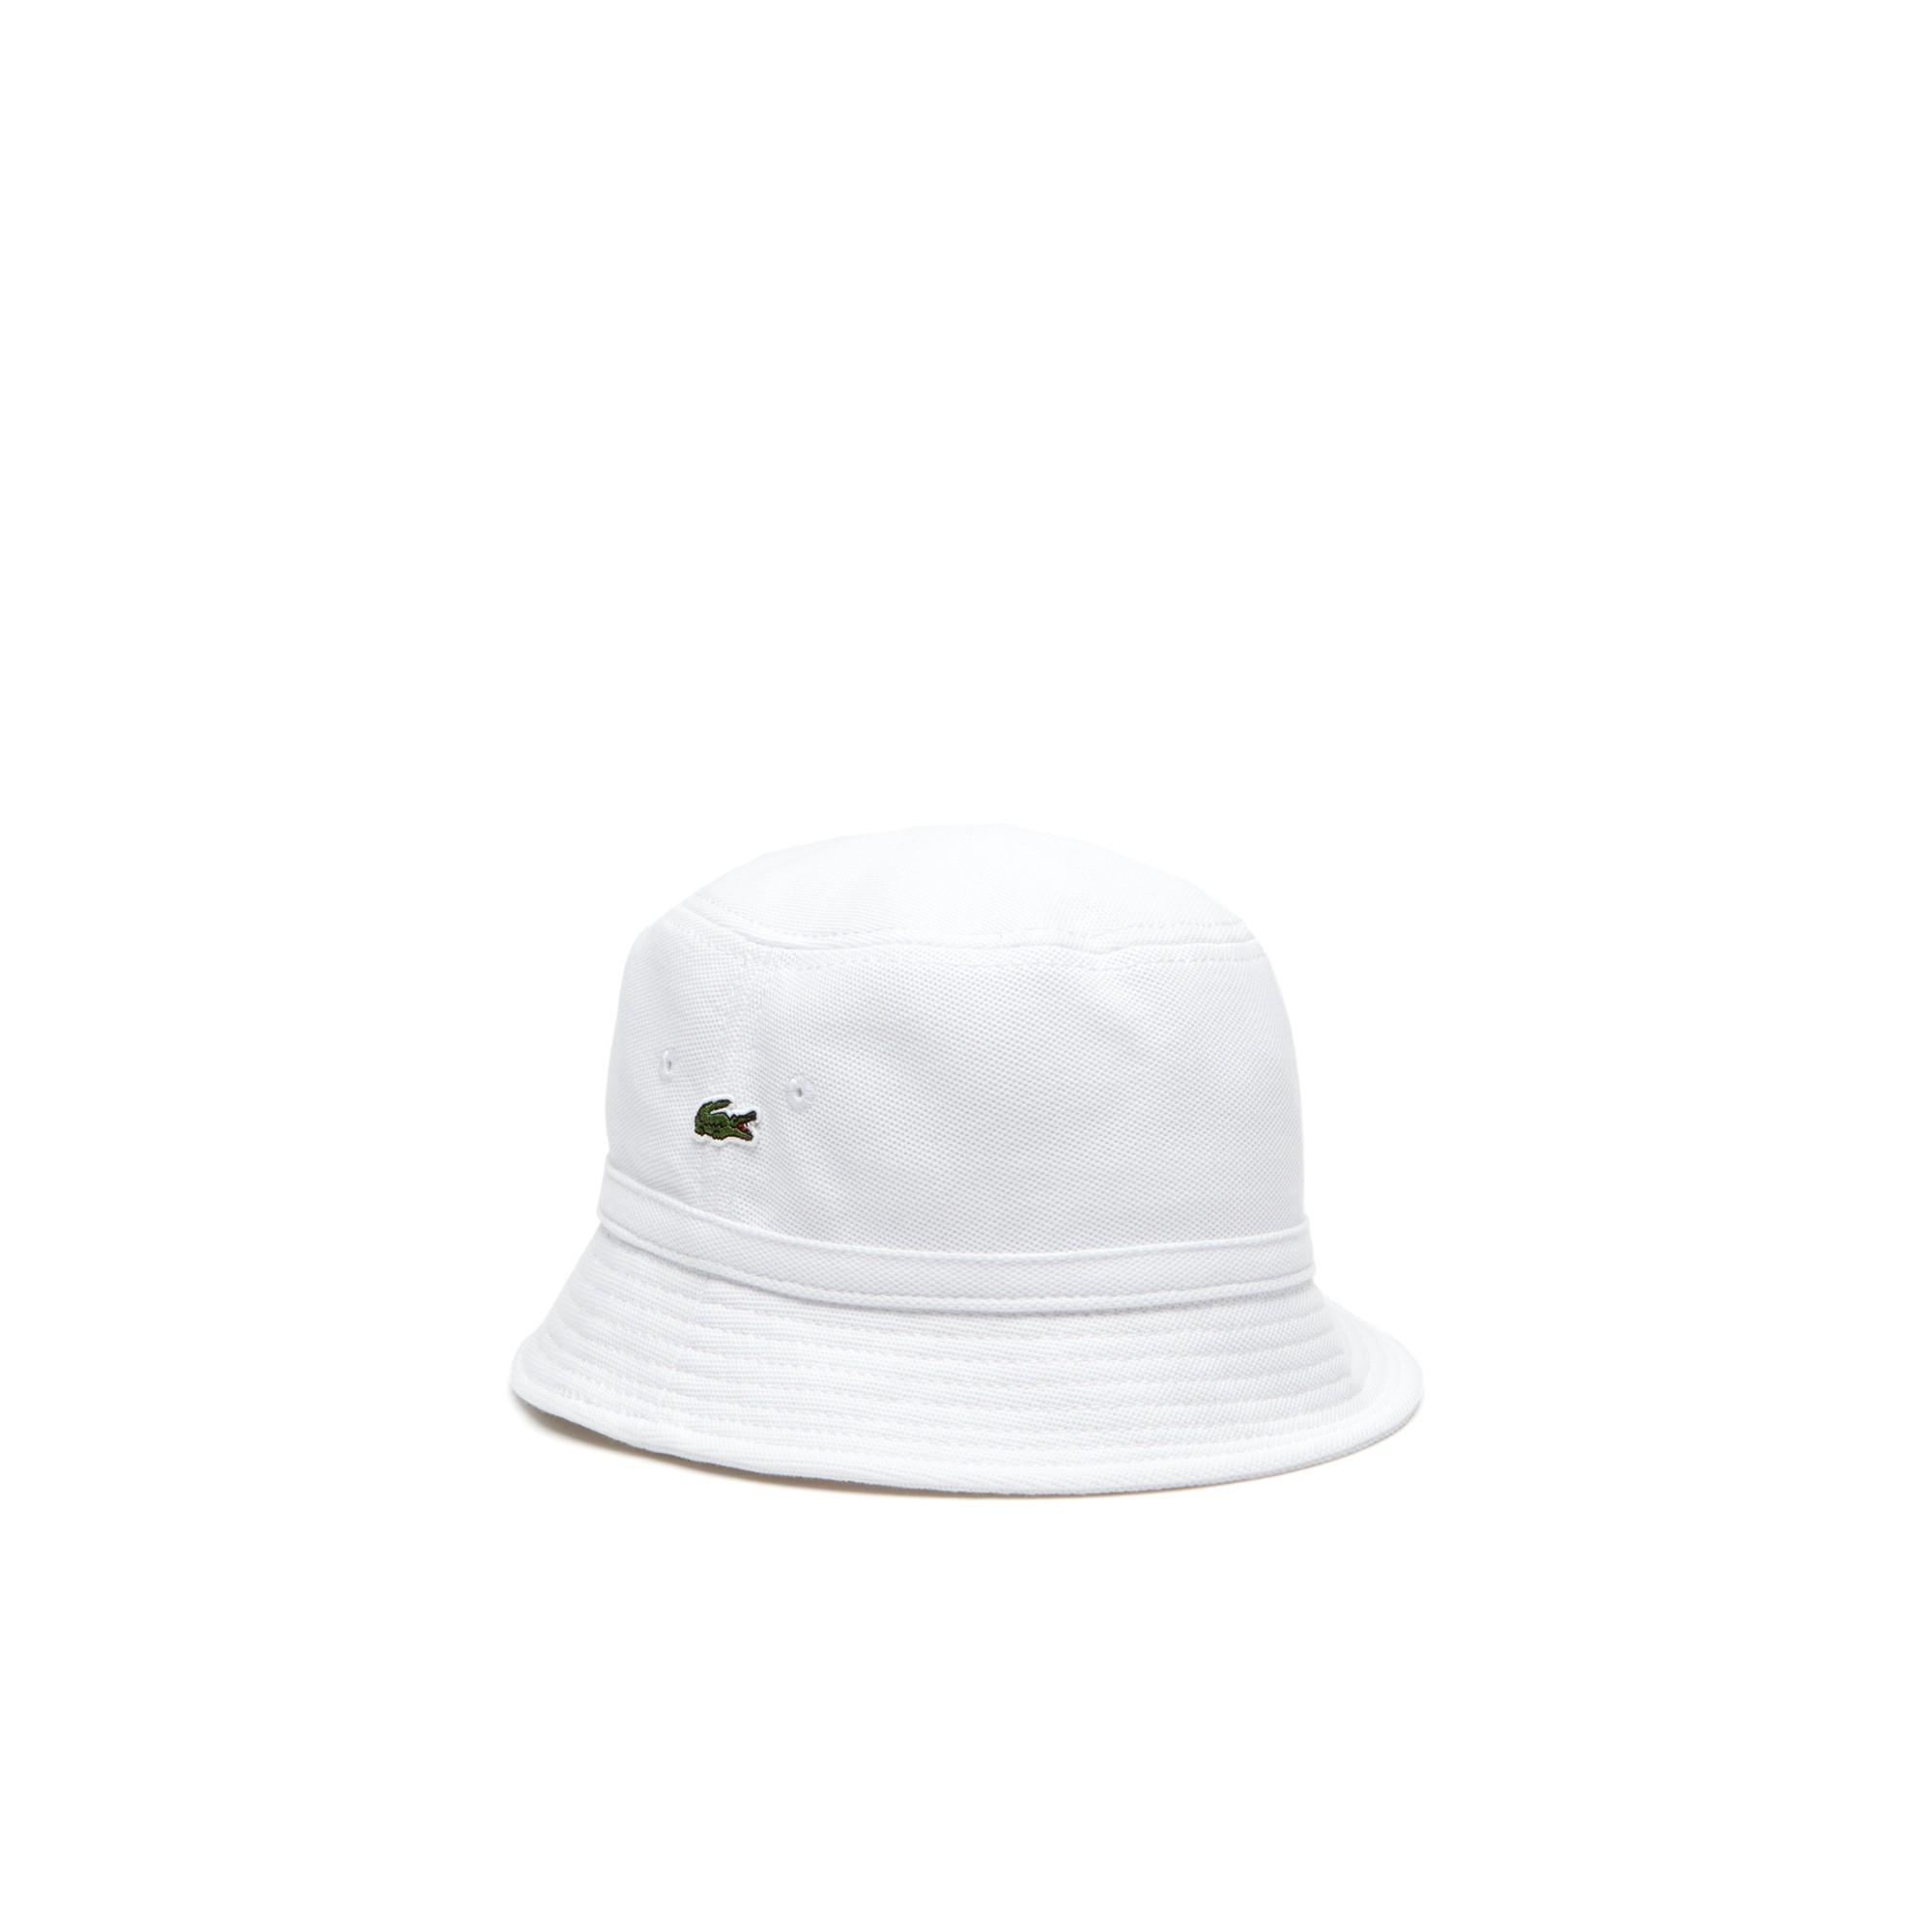 5e16b5157af09 Lacoste Men s Cotton PiquÉ Bucket Hat In White